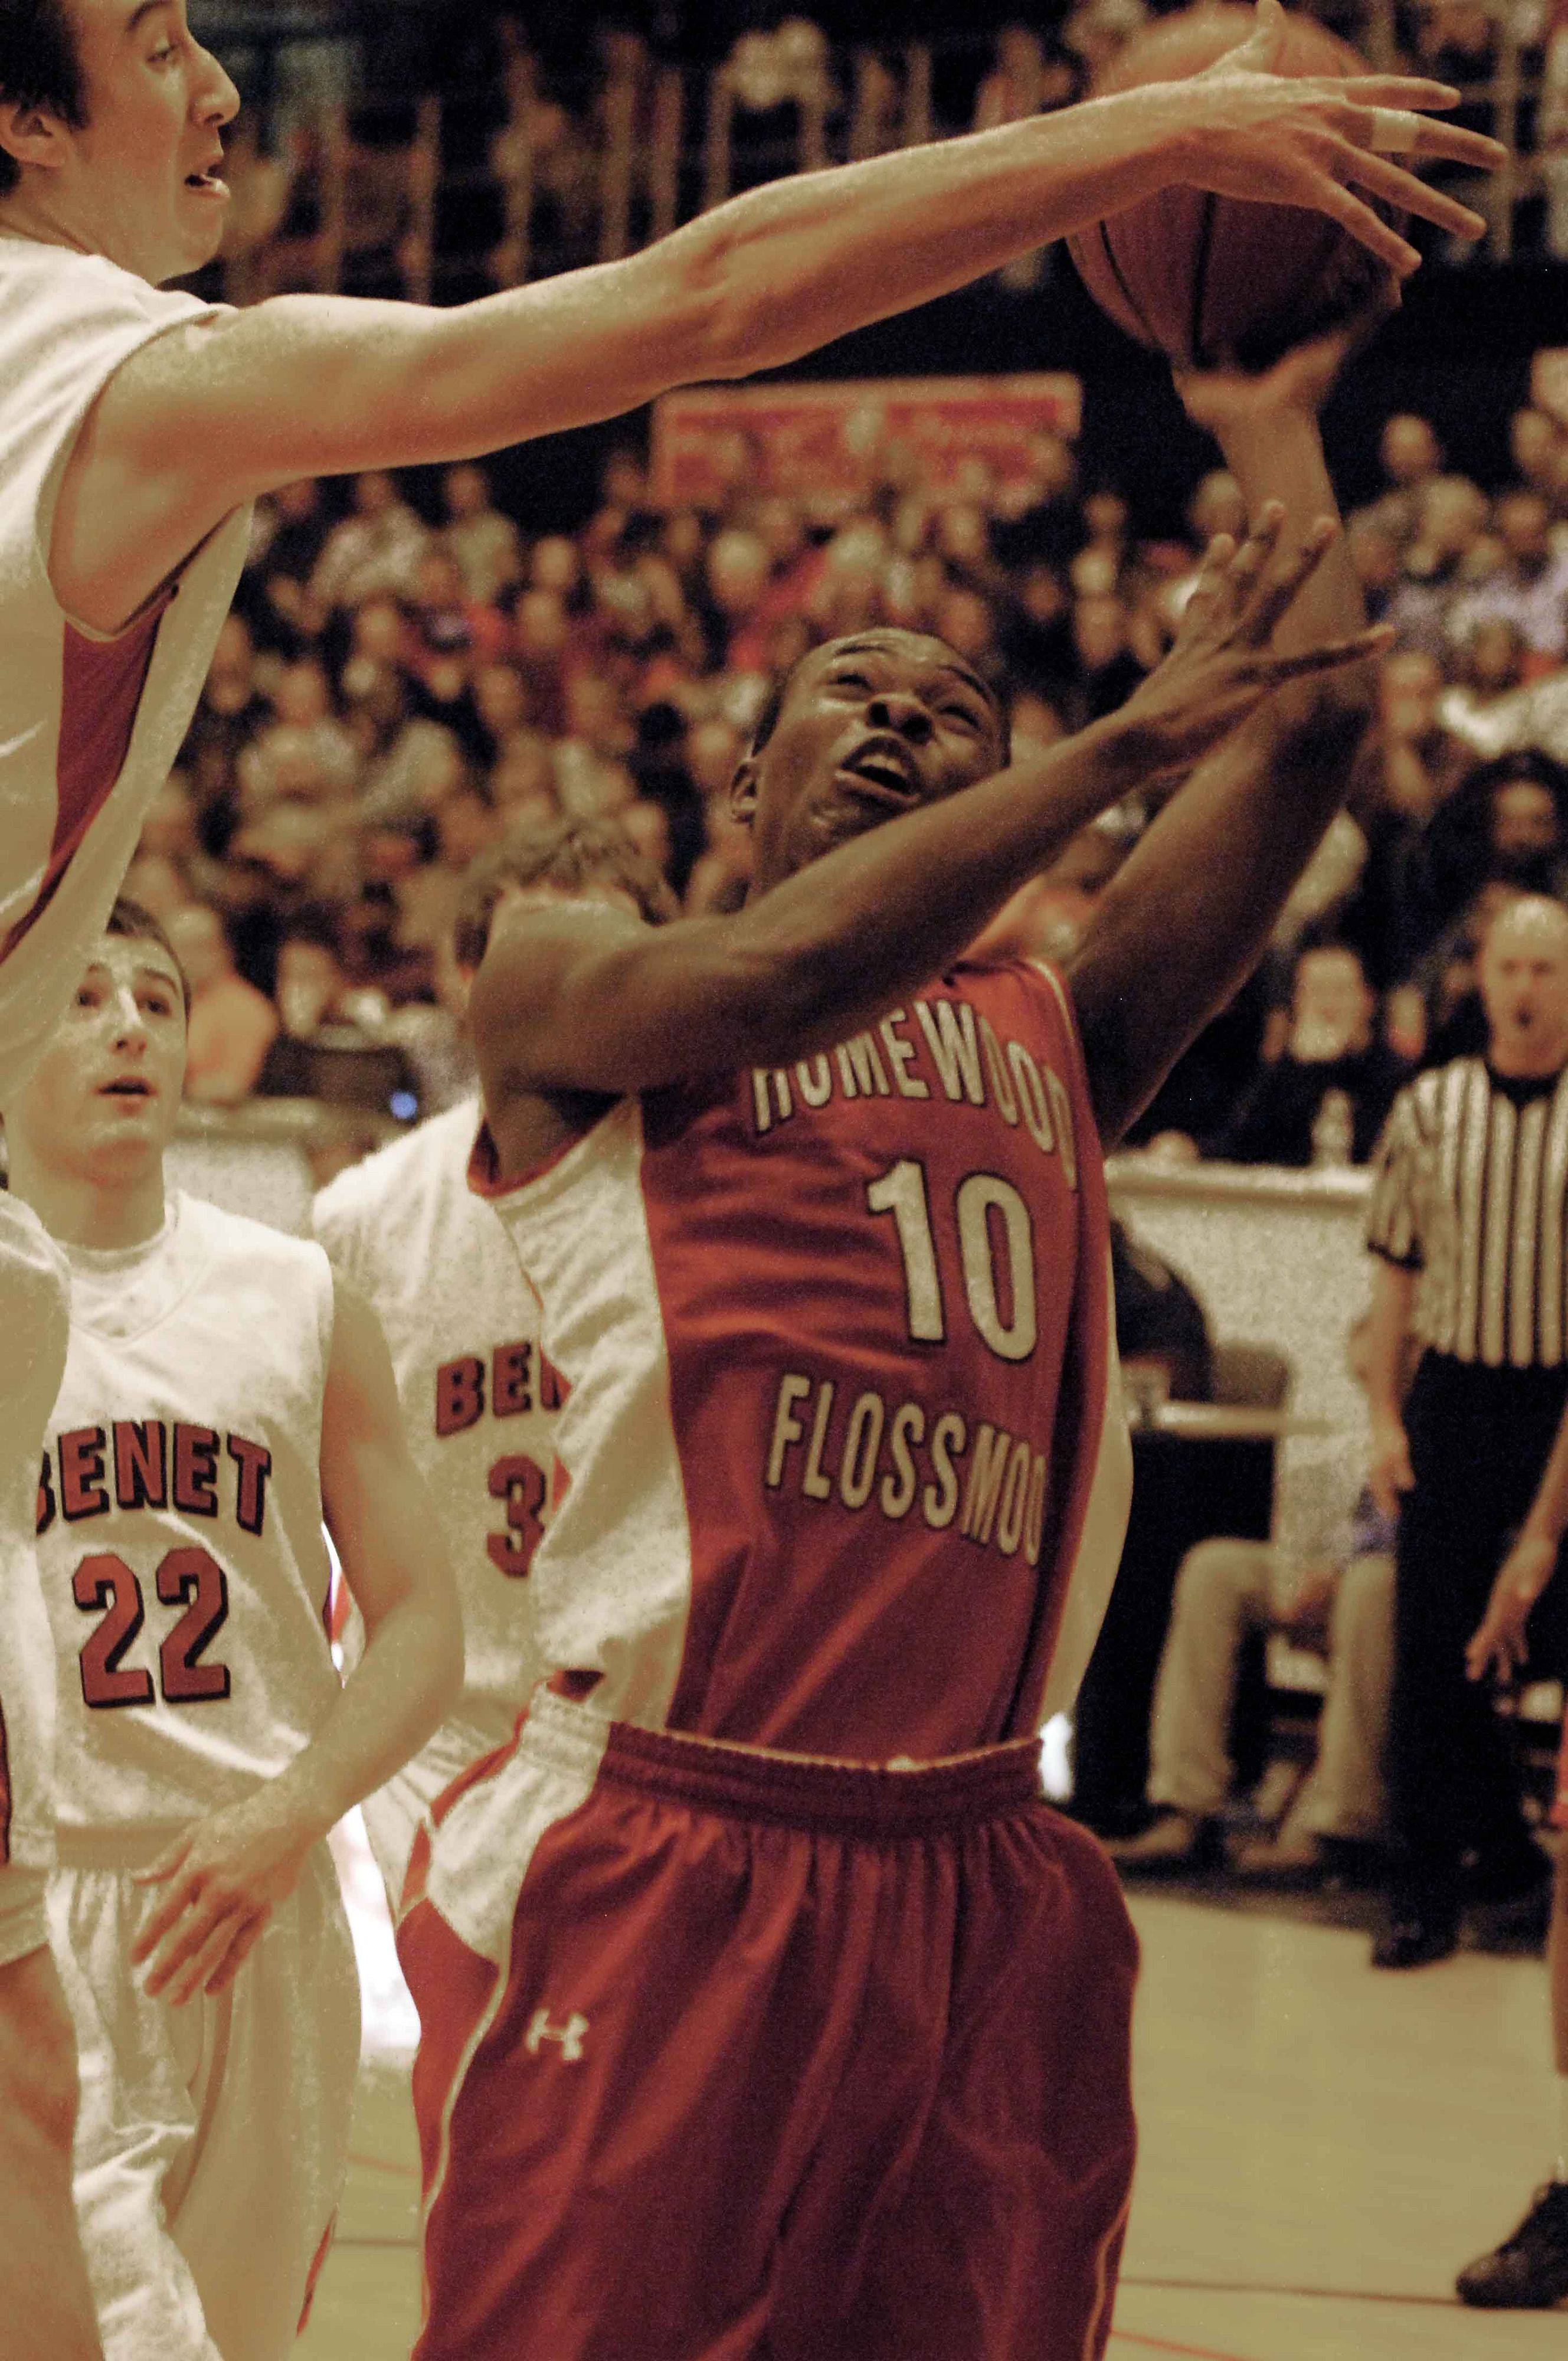 Frank Kaminsky of Benet,left, blocks a shot from Tyrone Sherman of Homewood-Floosmoor. This took place during the Benet vs. Homewood-Flossmoor game at Proviso West High School in Hillside Thursday.